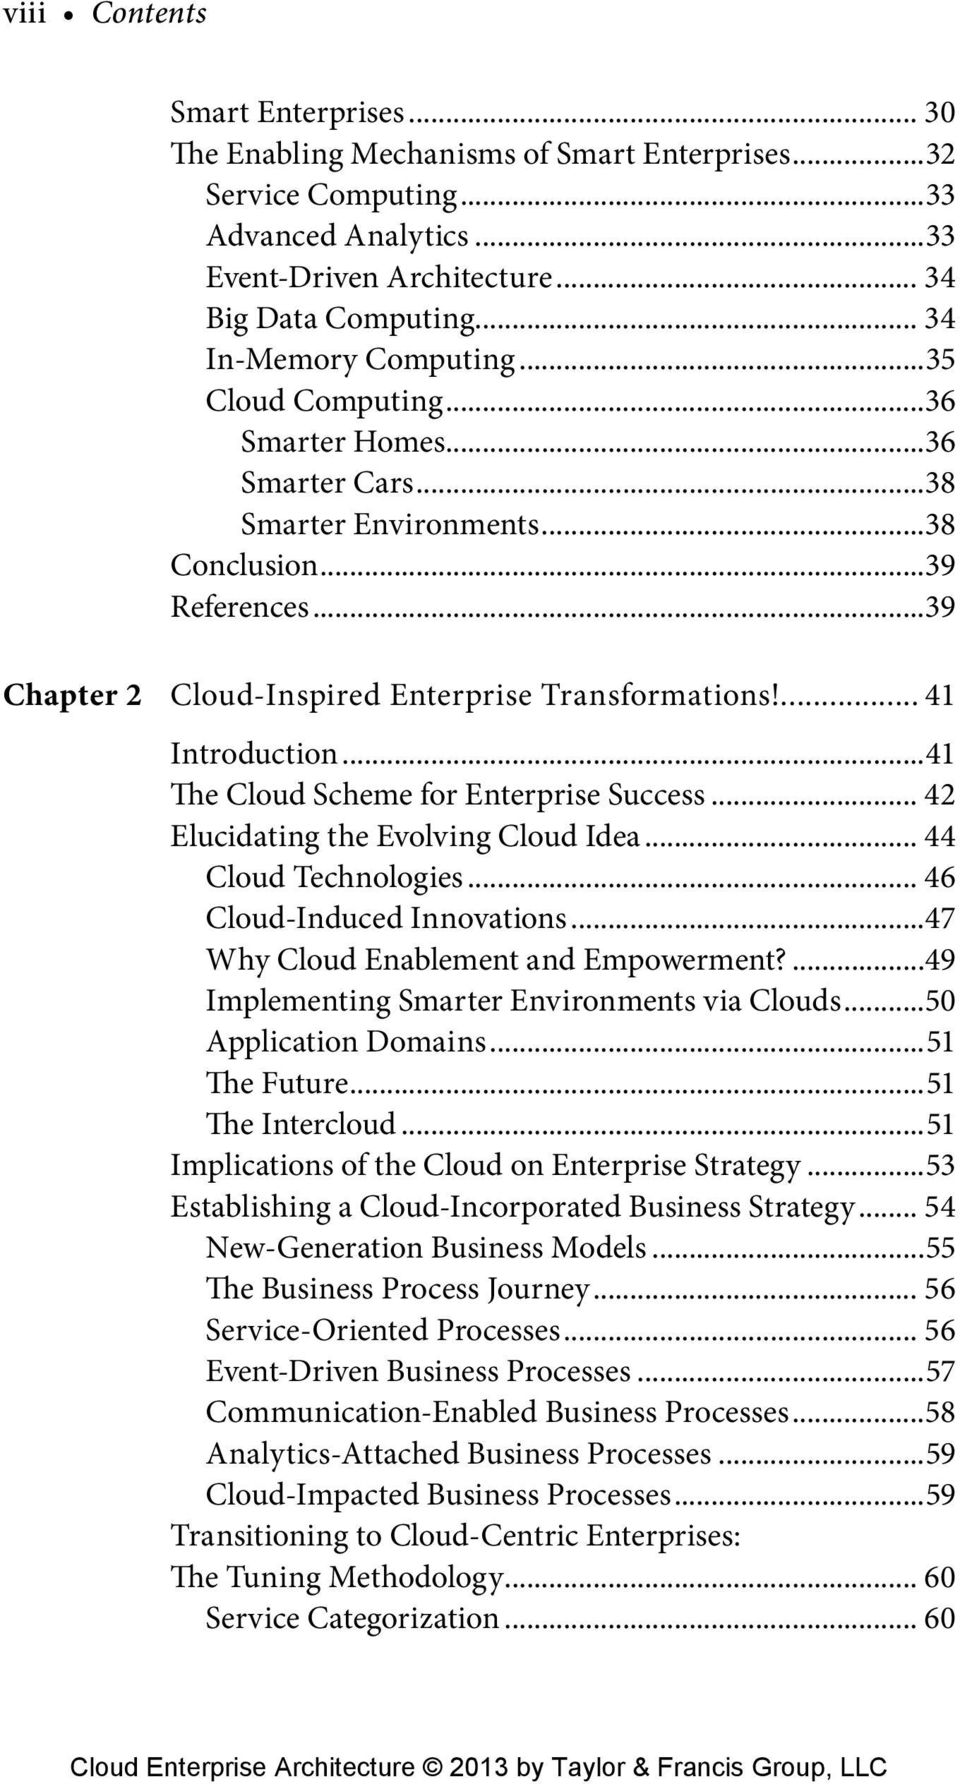 ... 41 Introduction...41 The Cloud Scheme for Enterprise Success... 42 Elucidating the Evolving Cloud Idea... 44 Cloud Technologies... 46 Cloud-Induced Innovations.